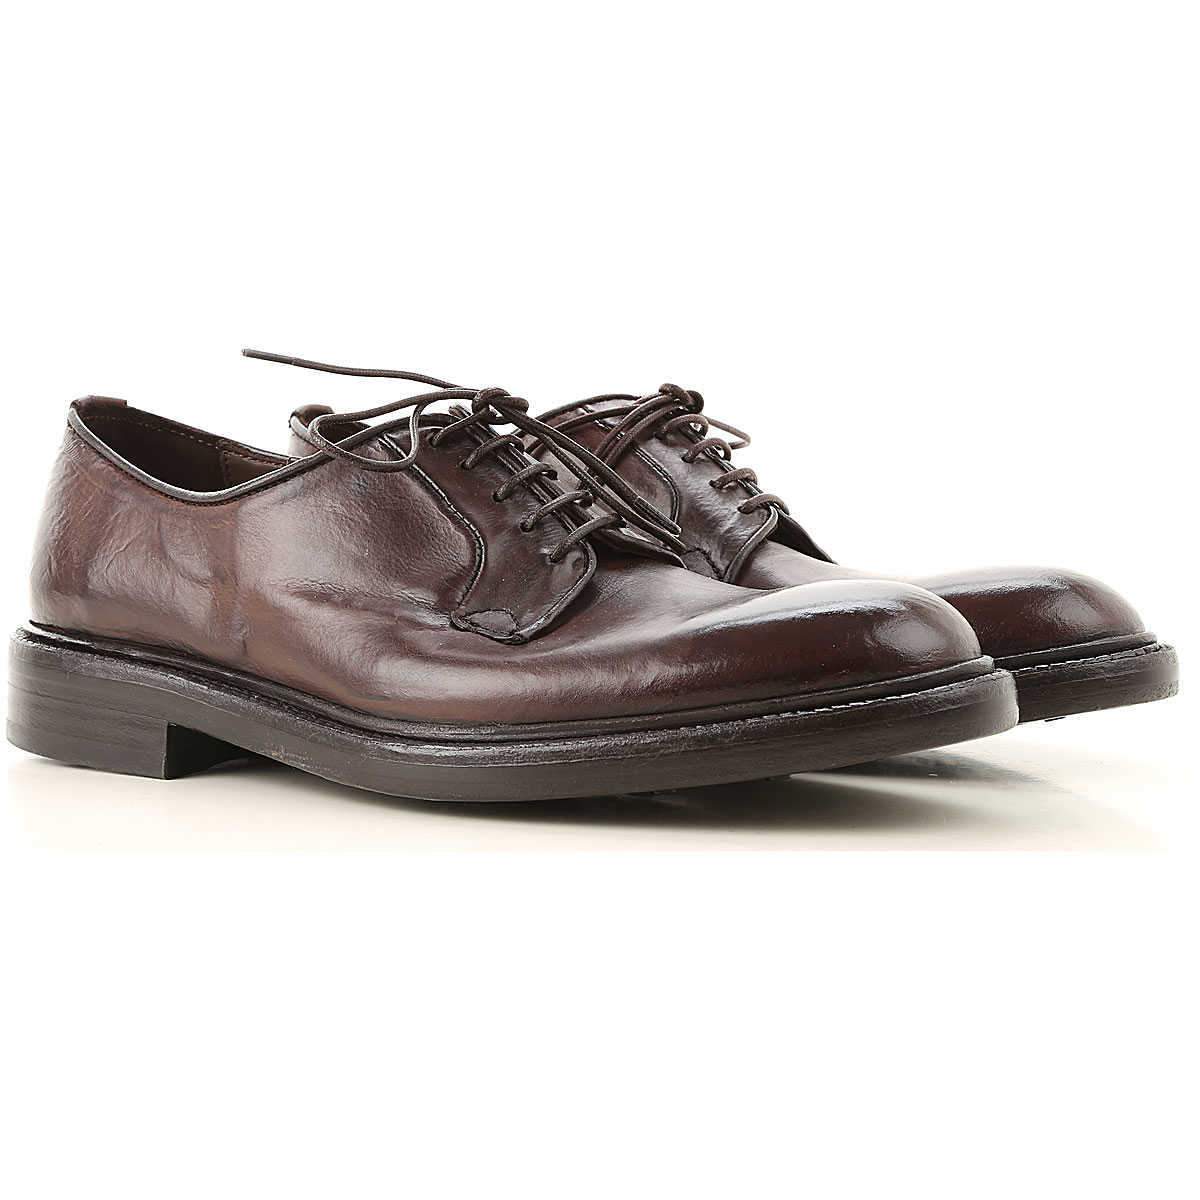 Green George Lace Up Shoes for Men Oxfords Derbies and Brogues - GOOFASH